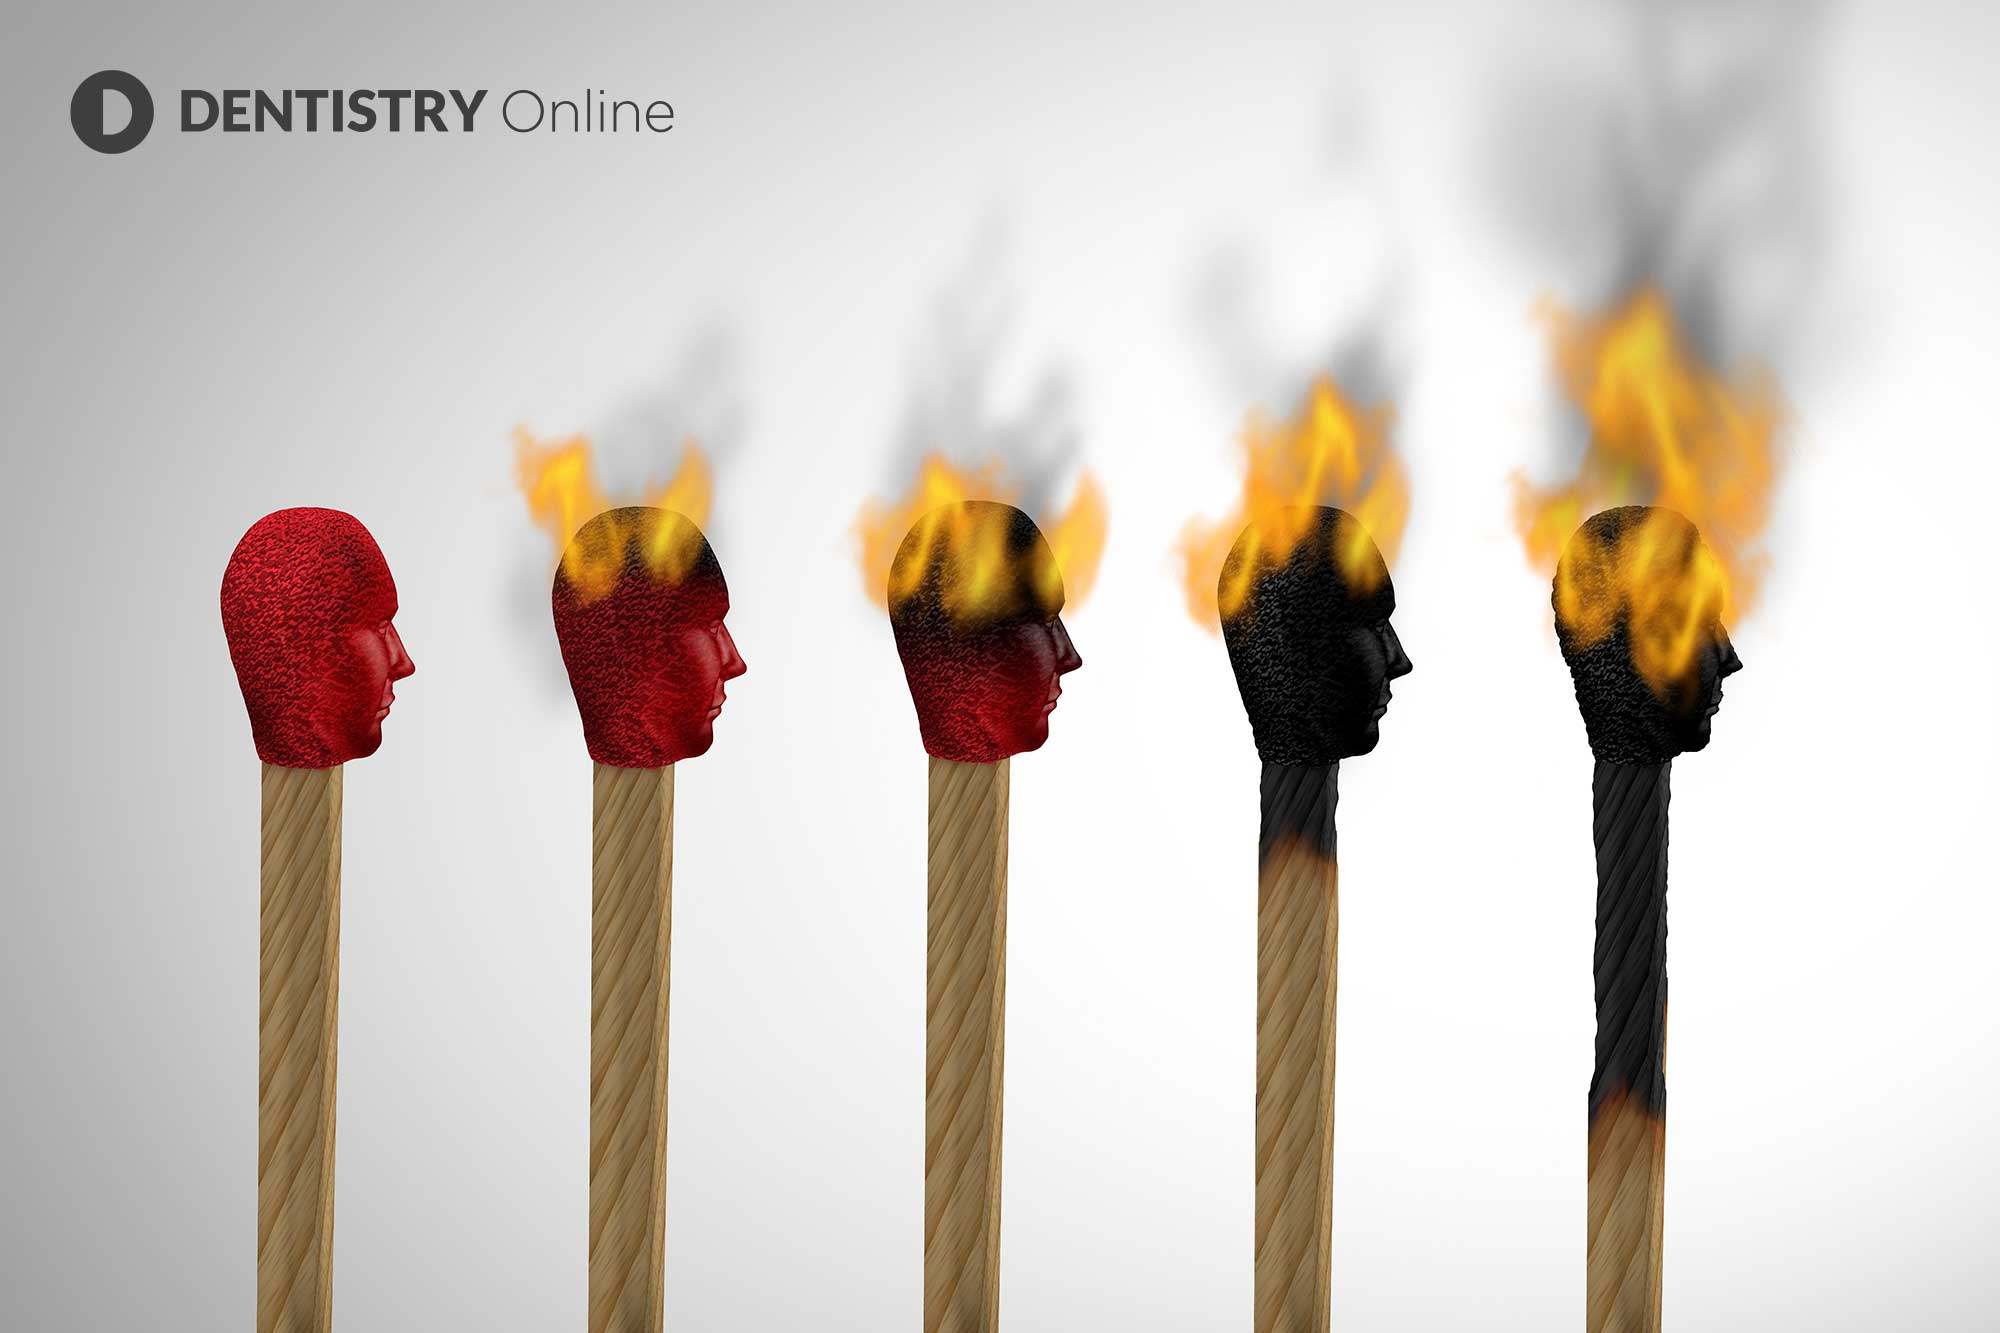 How to avoid burnout in dentistry